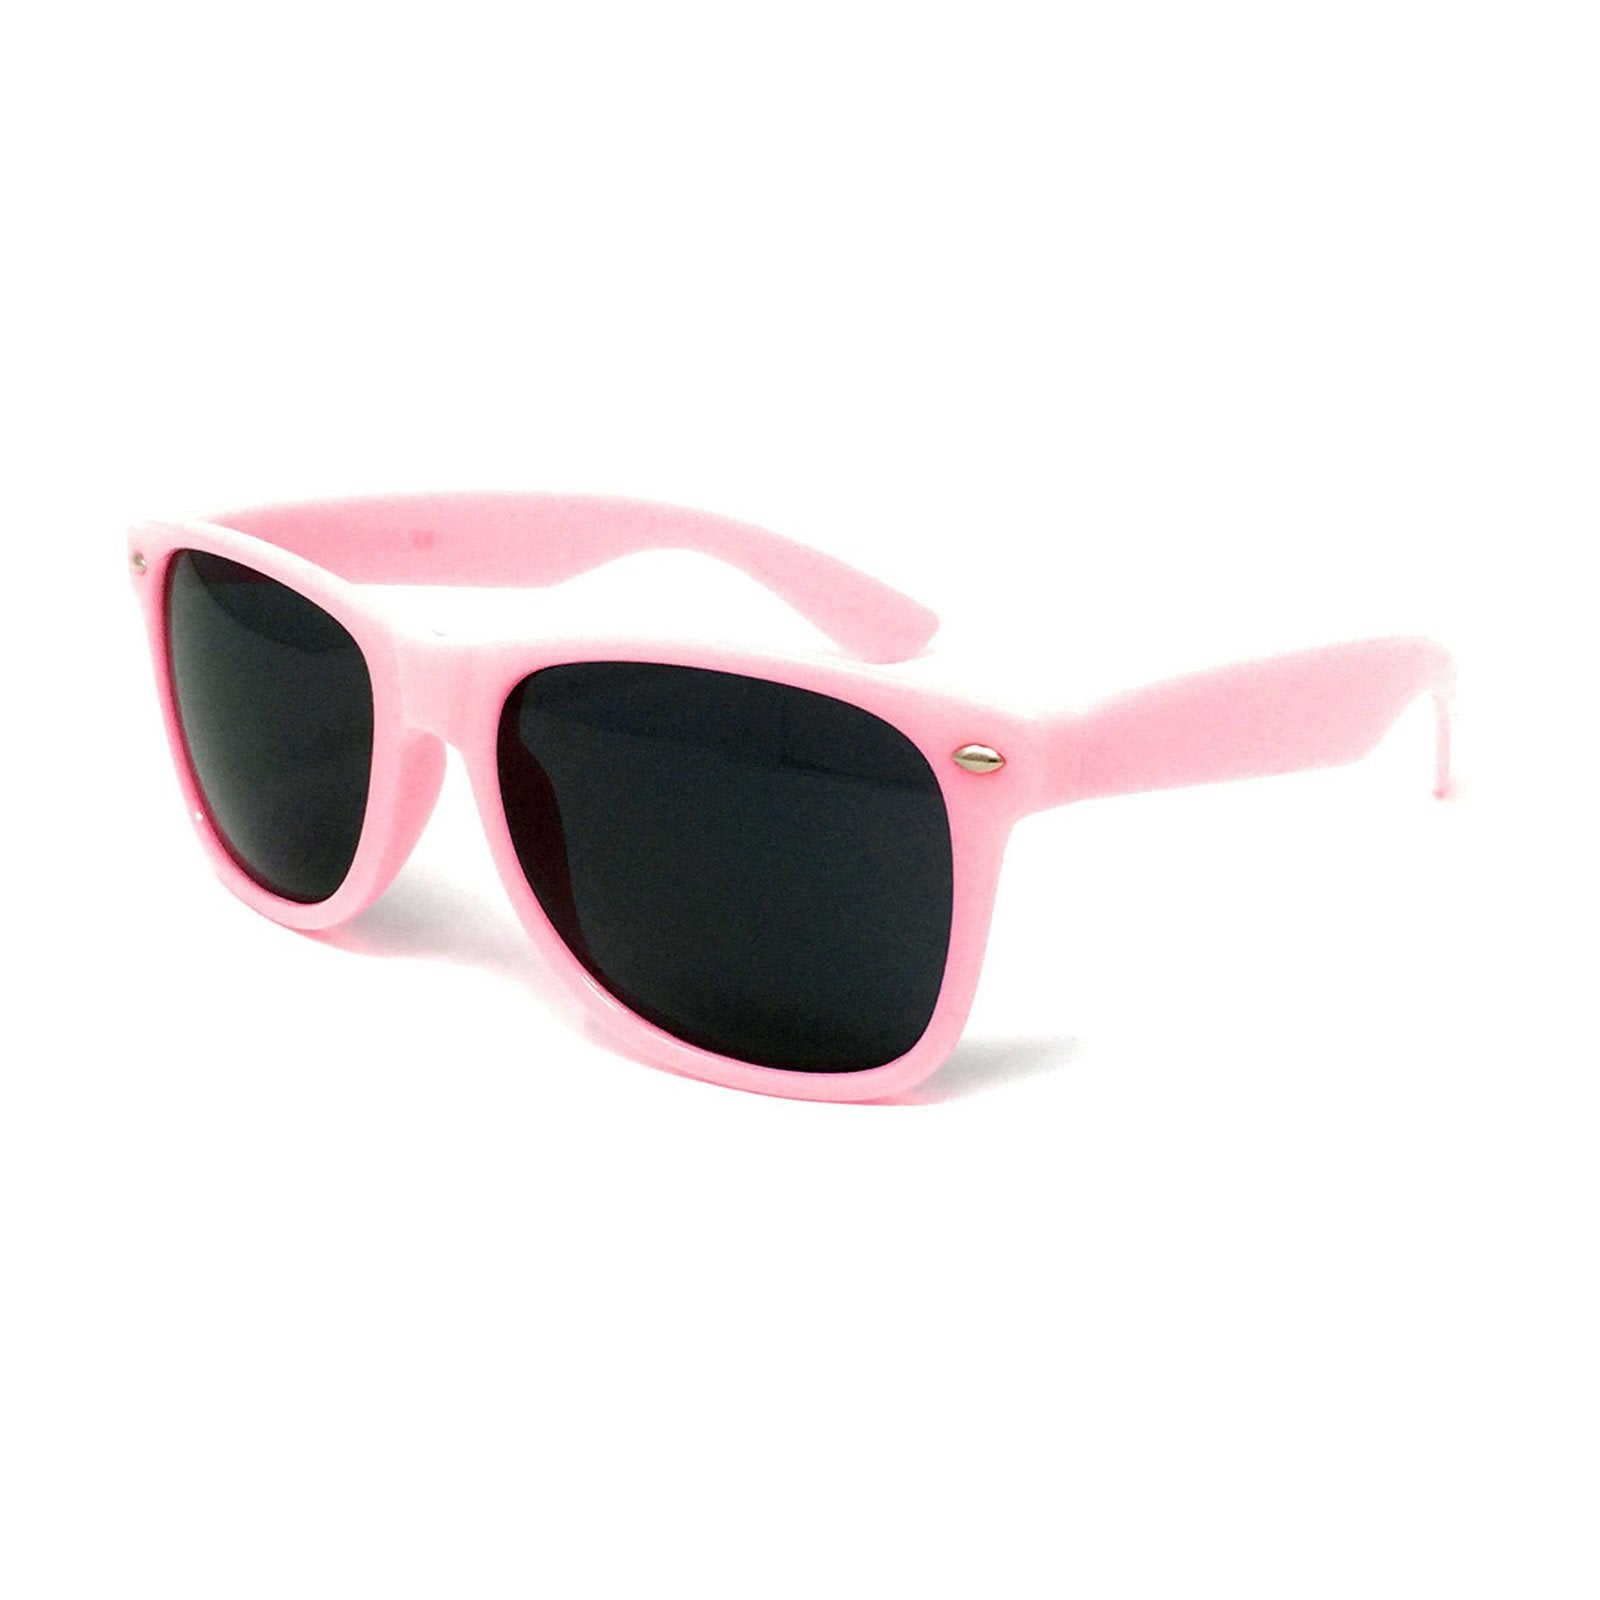 Wholesale Classic Sunglasses - Light Pink Frame, Black Lens